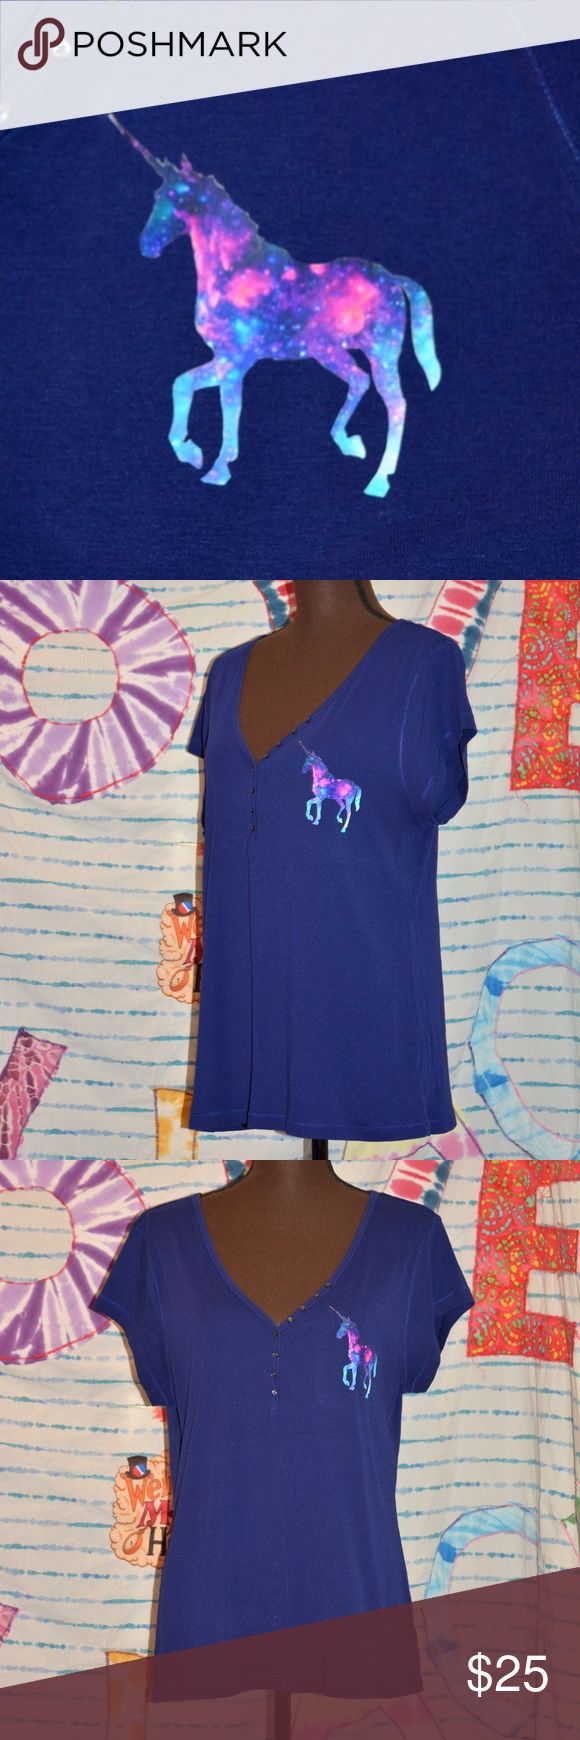 Galactic Unicorn XXL Super Soft Tee Shirt Blue 2X This amazing electric blue galactic tee is super soft and stretchy and fits size XXL! Features an amazing galaxy unicorn on the breast to show your inner mystical creature! This is a one of a kind creation, which means you will be the only person in the world wearing this beautiful masterpiece!  Measures: Bust: 40 inches Waist: 38 inches Hips: 46 inches Length: 27 inches  Care directions: Machine washable in cold water inside out. Line dry…